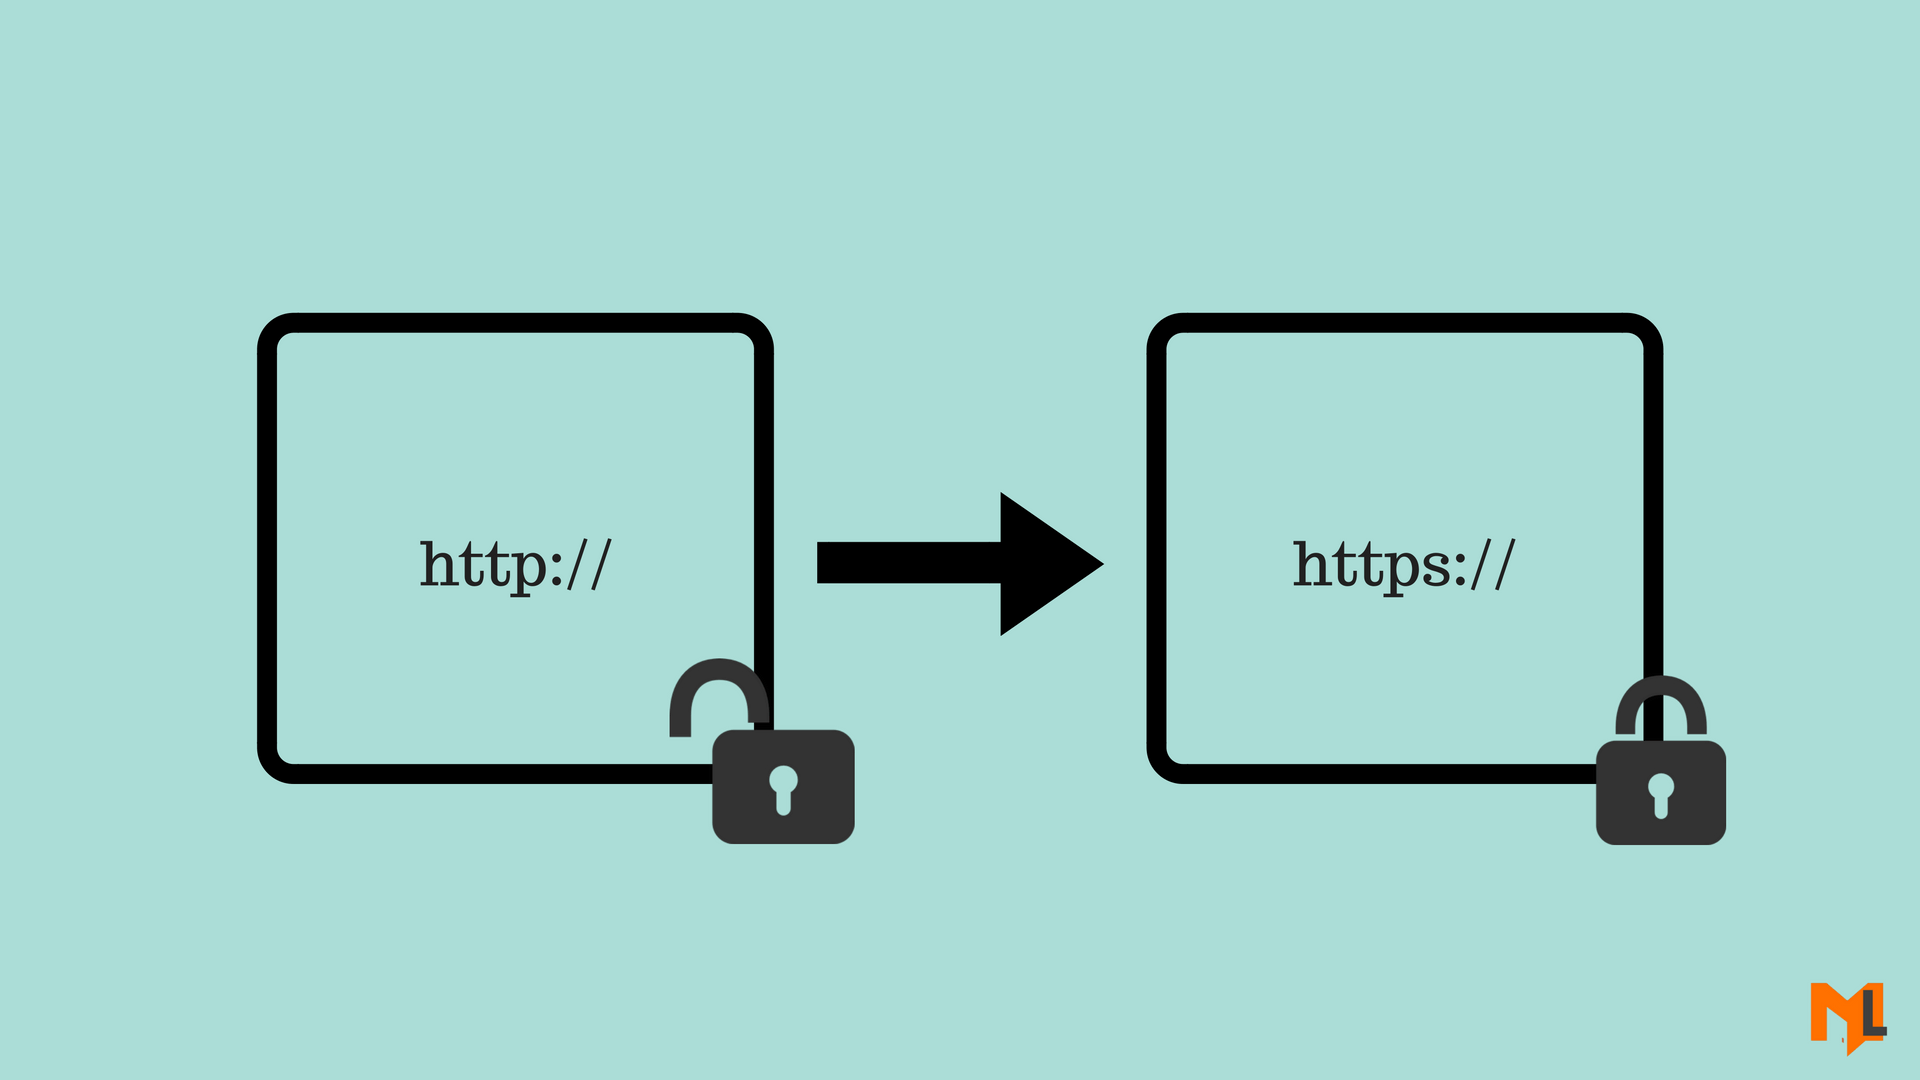 https to https redirect